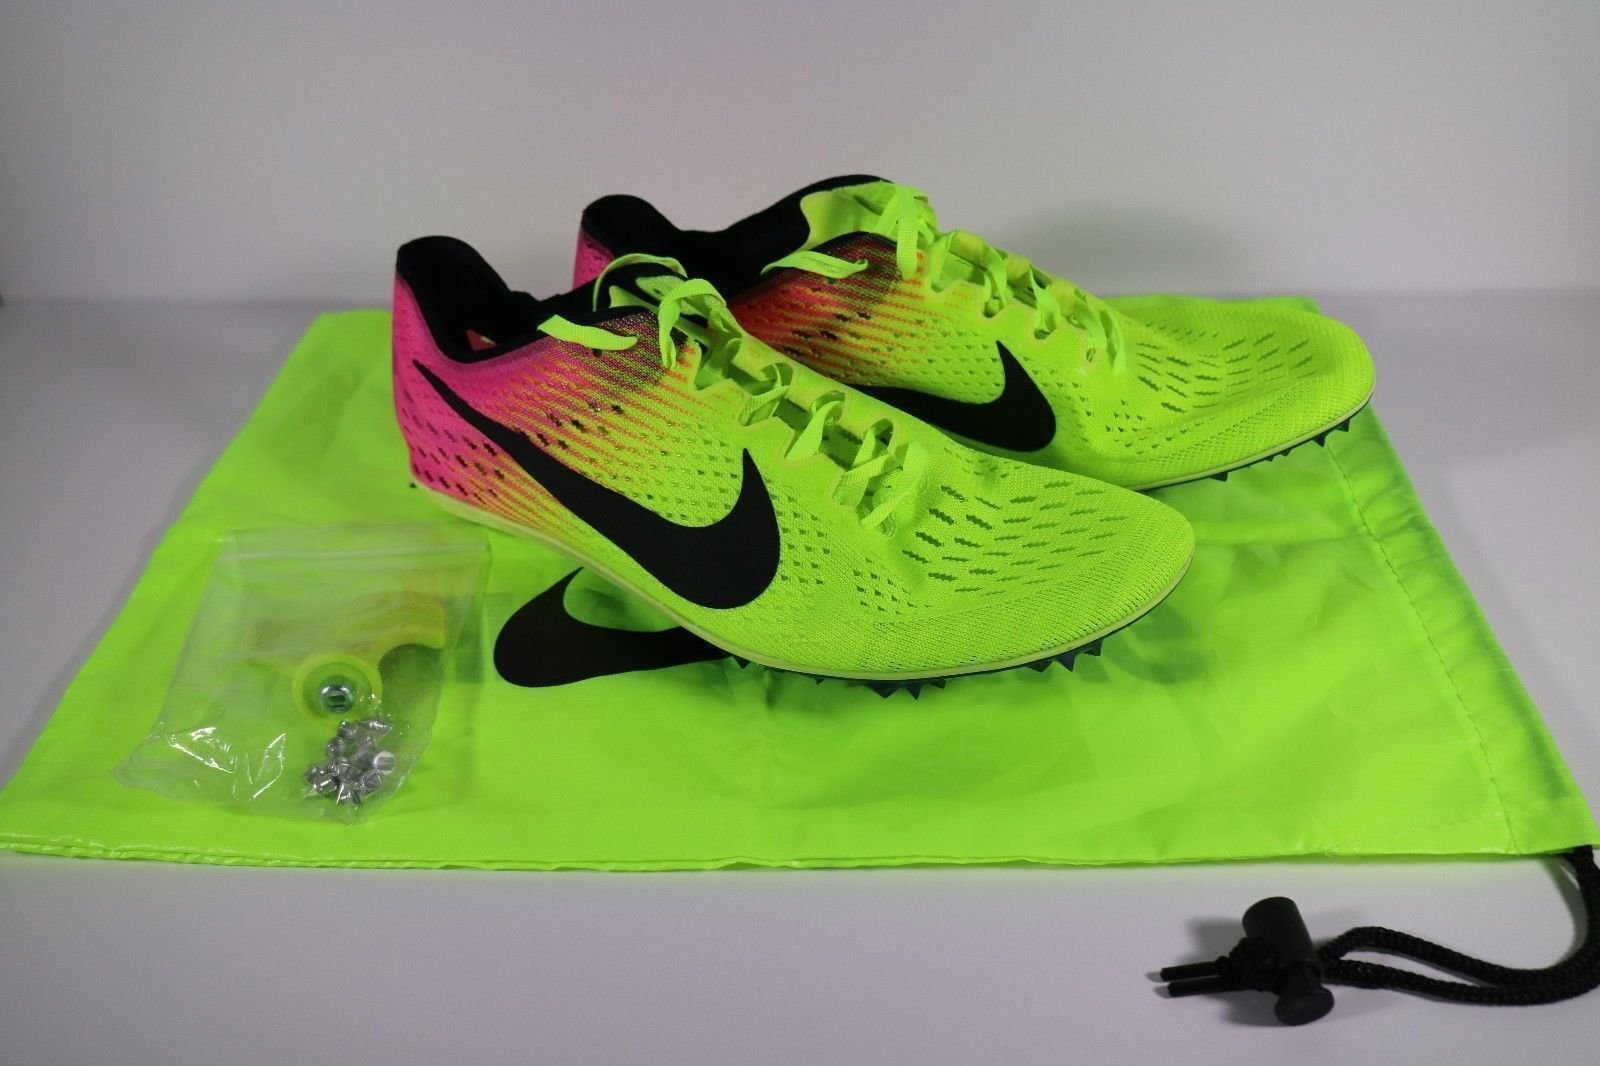 NIKE ZOOM VICTORY 3 RIO TRACK & FIELD SPIKES SIZE 4.5 VOLT PINK BLACK 835997-999